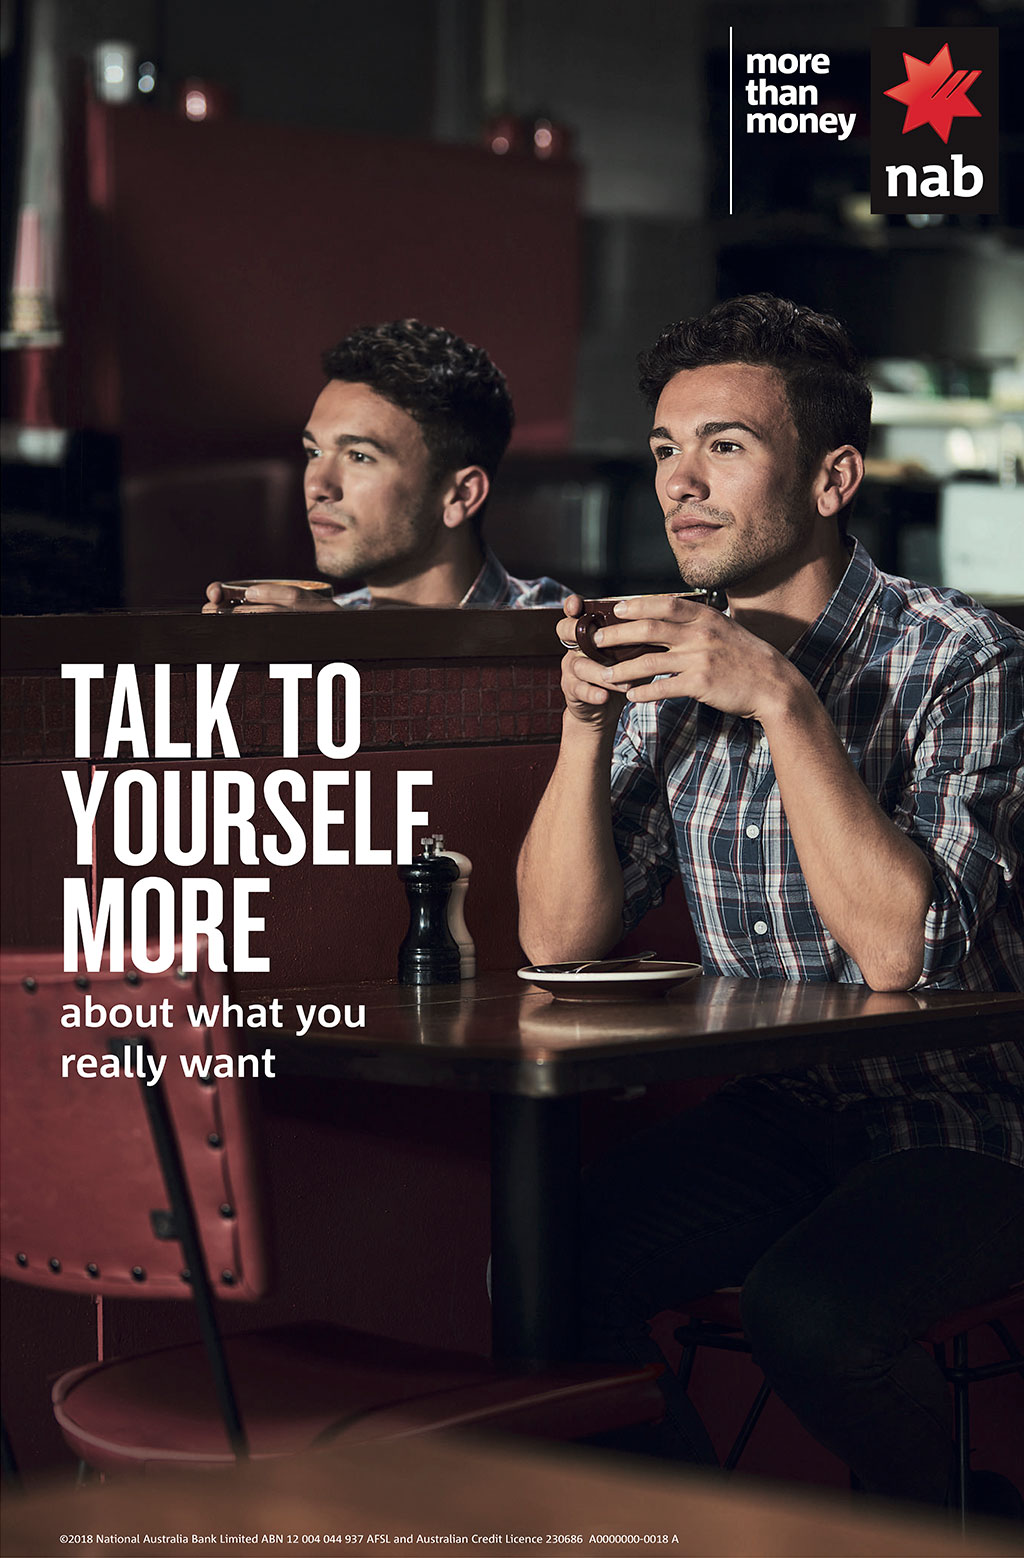 NAB Talk to Yourself More Campaign